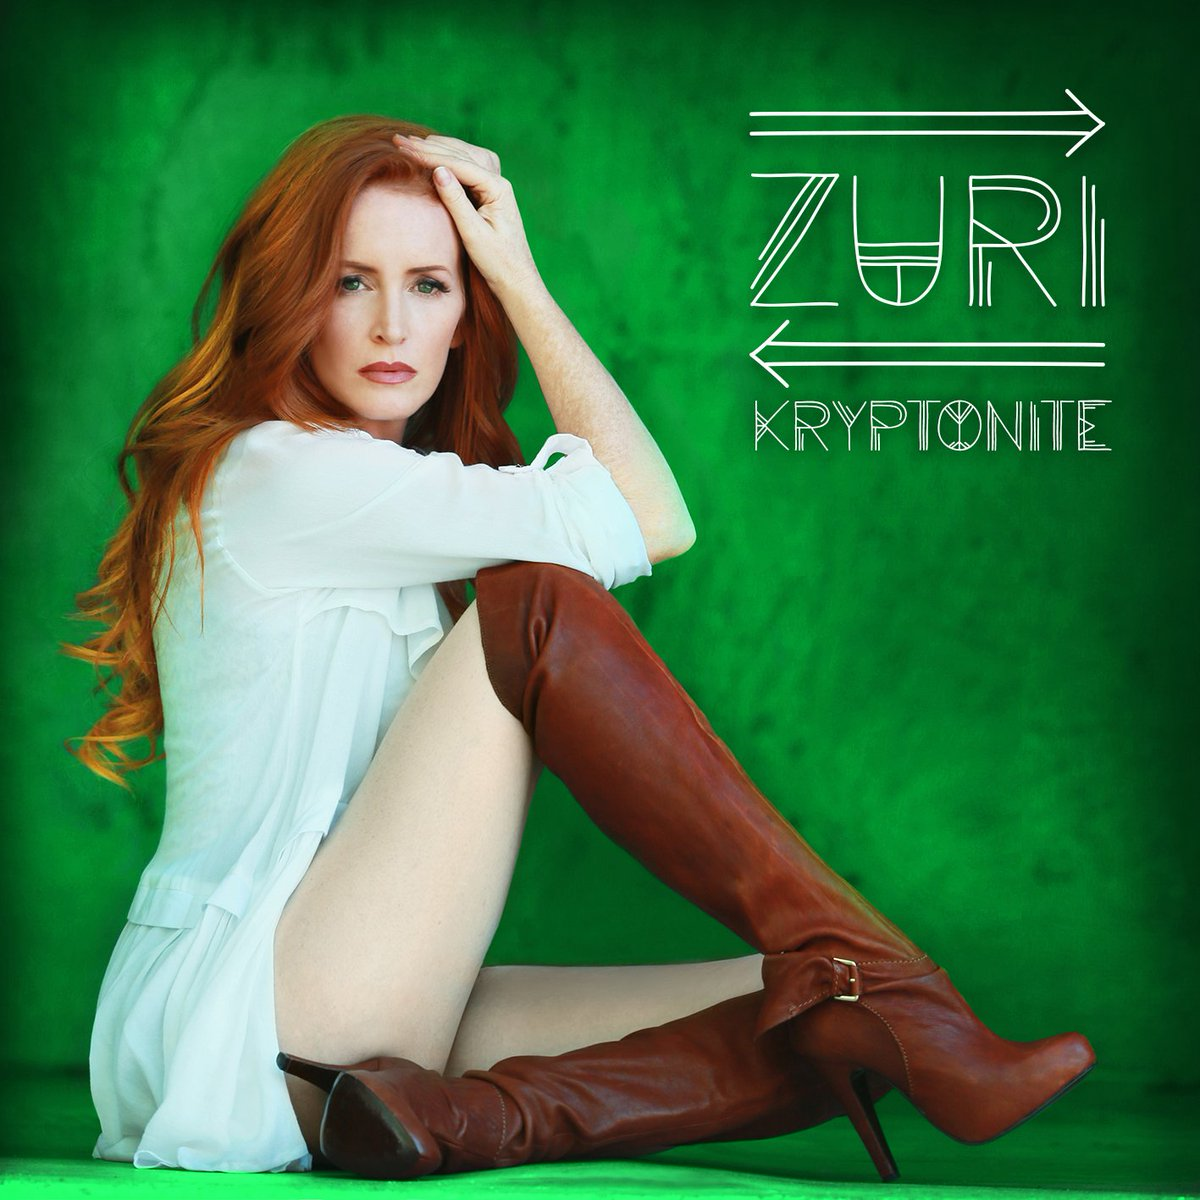 Hey #LOVERS, you did it! 58K! Now go get my #NEWrelease #Kryptonite https://t.co/yReeM74IDN #musicmonday RT! https://t.co/IiGbOgtXgD